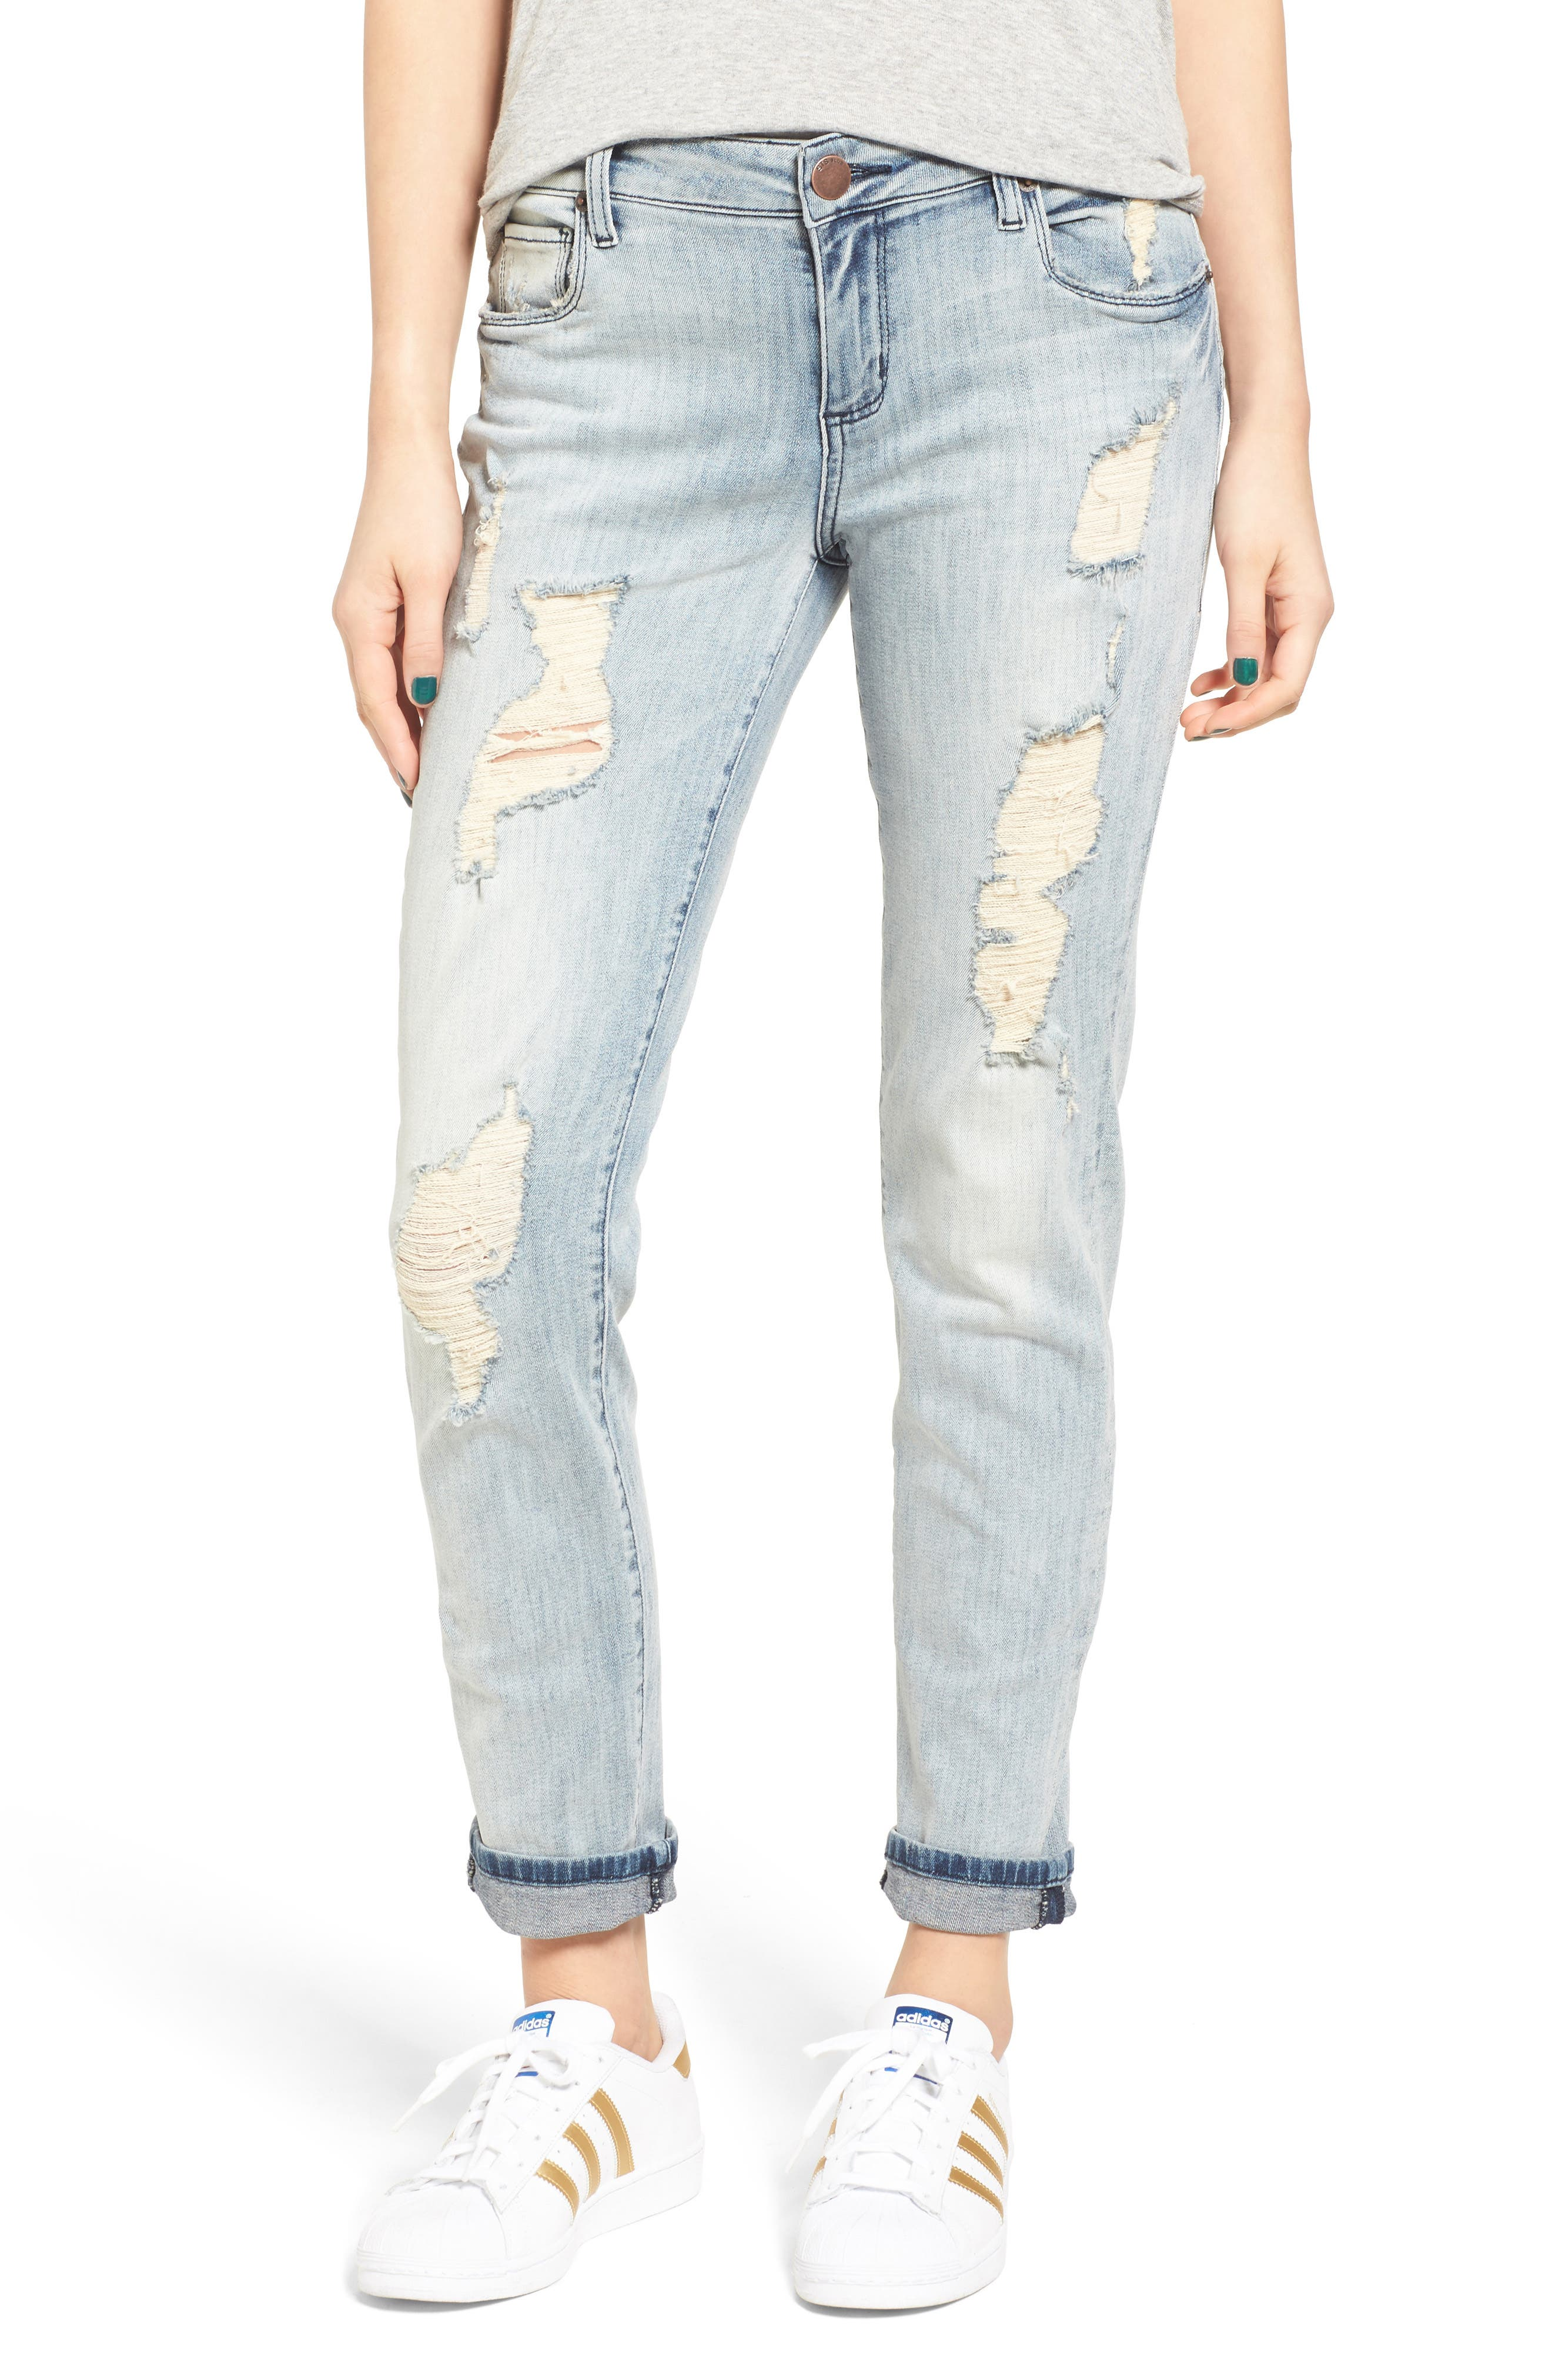 Alternate Image 1 Selected - STS Blue Carlie Tomboy Destroyed Jeans (Greenfield)